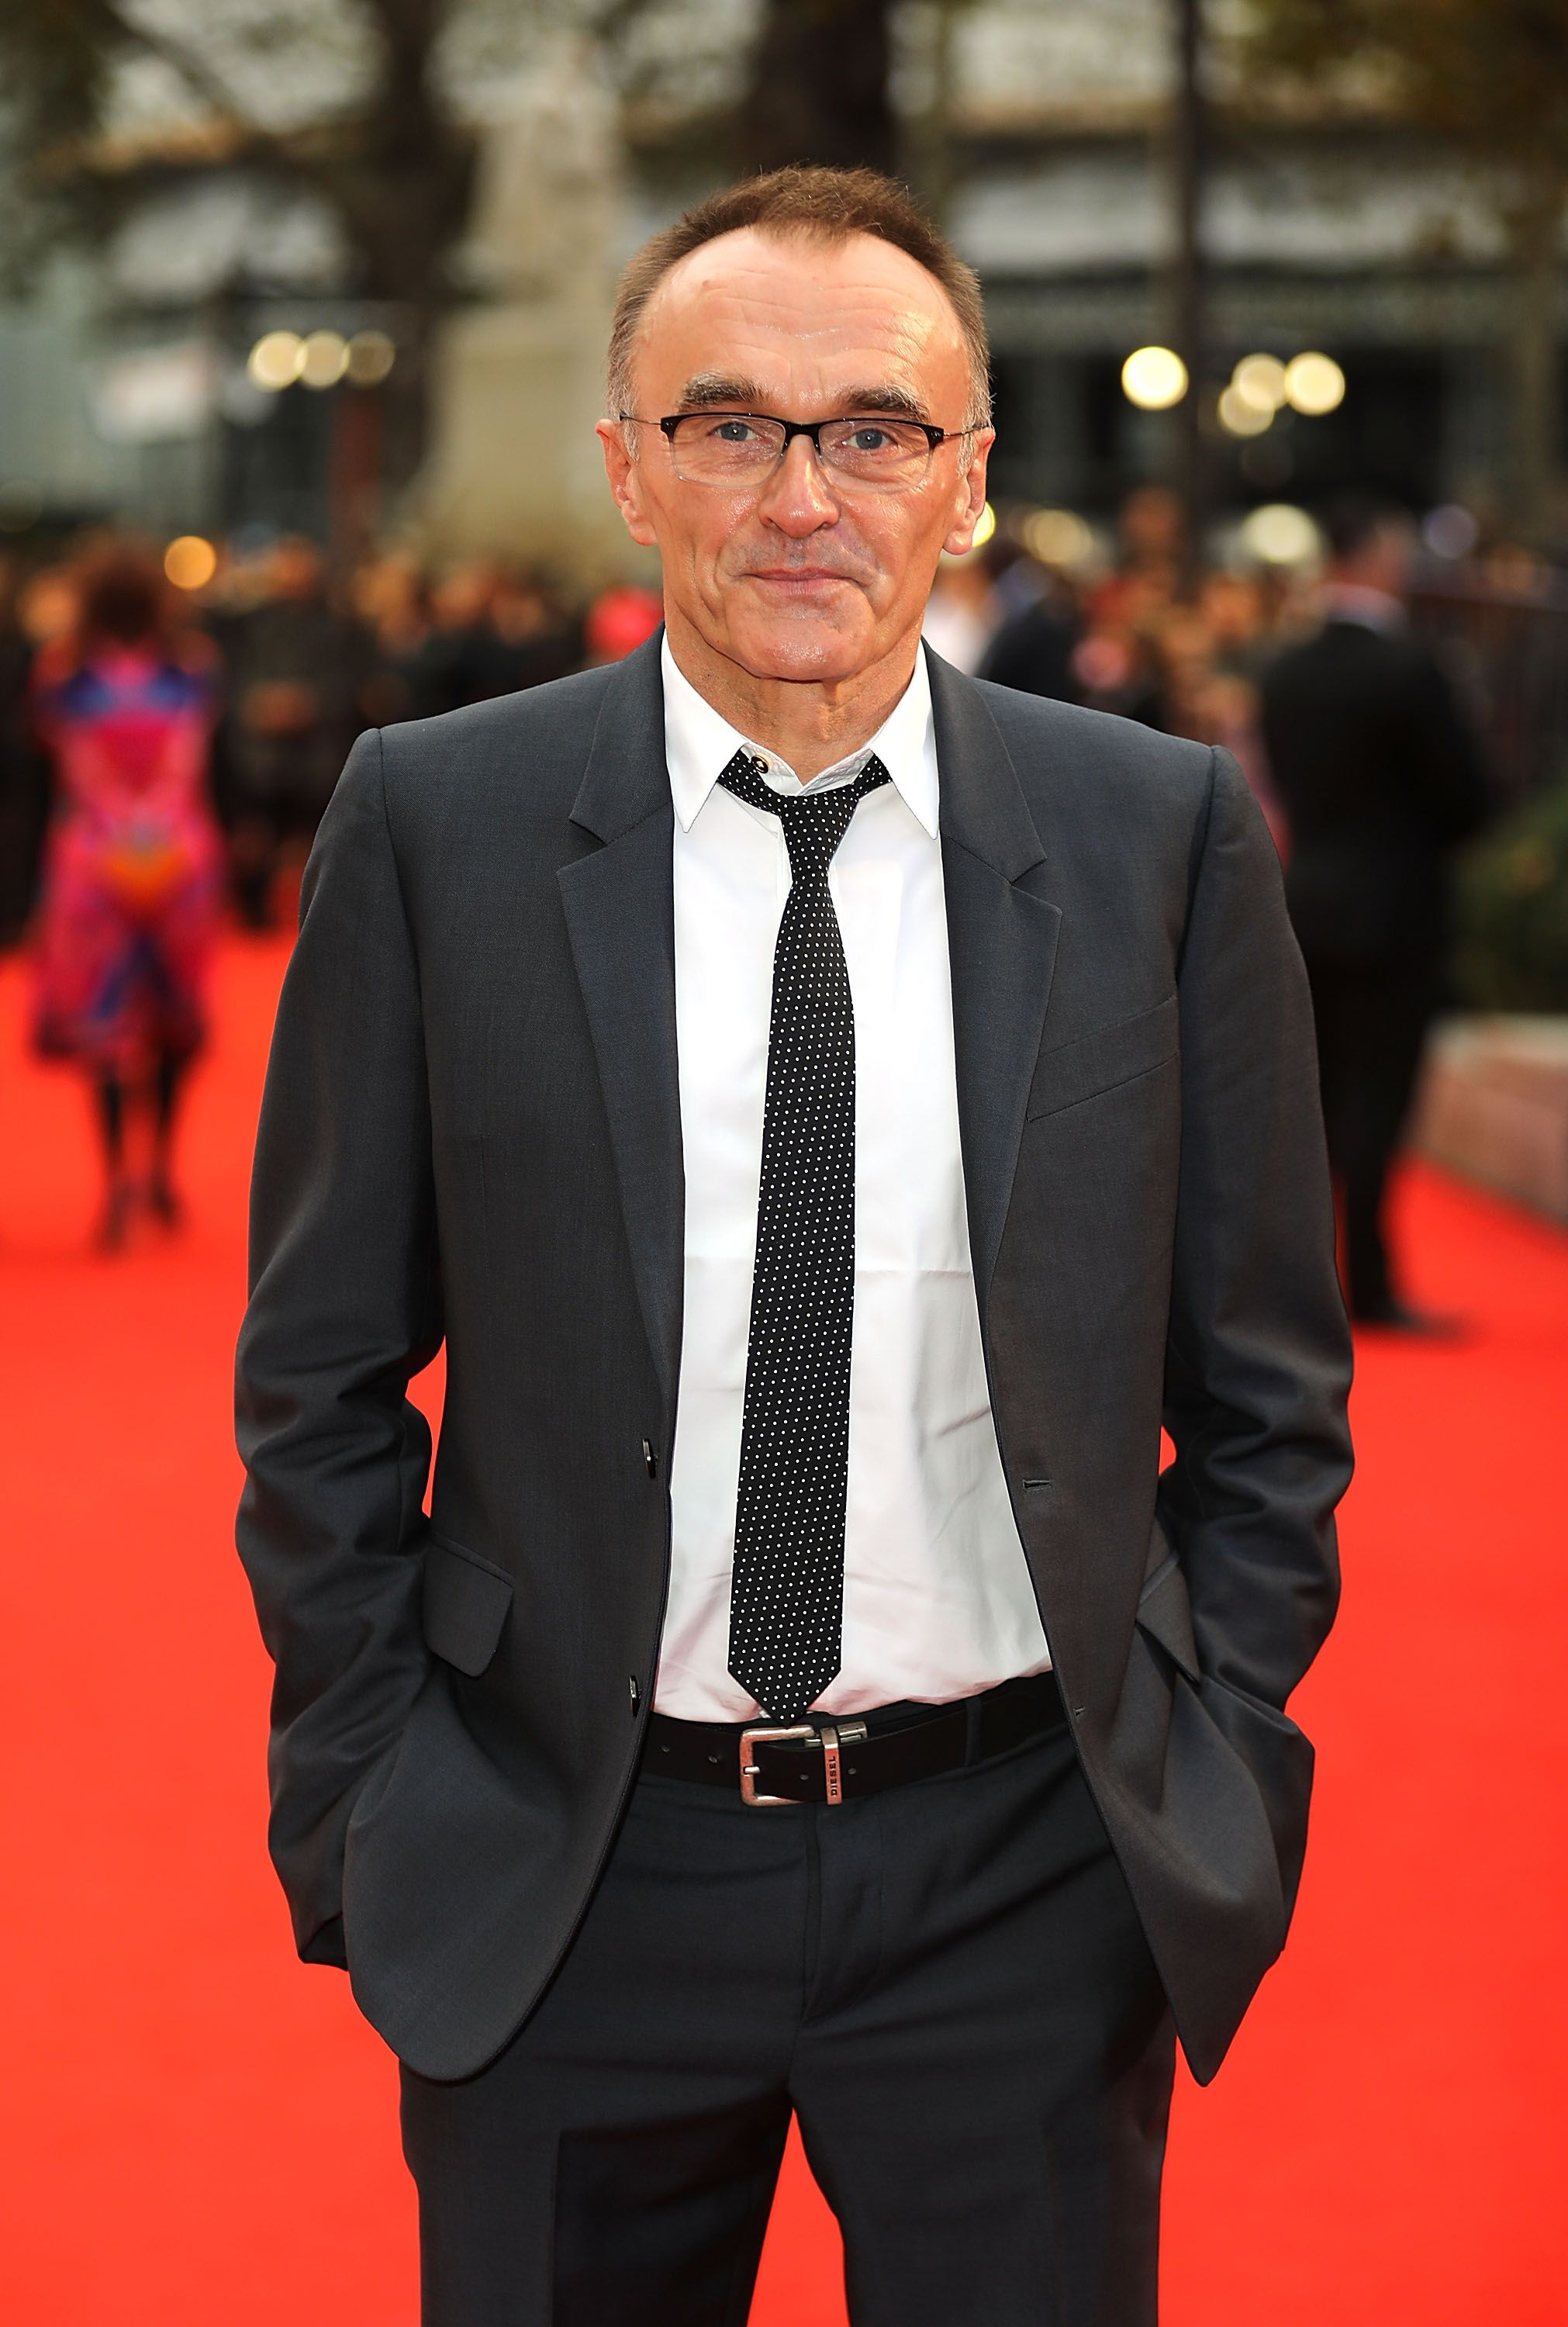 No Time to Die producers open up about why Danny Boyle quit